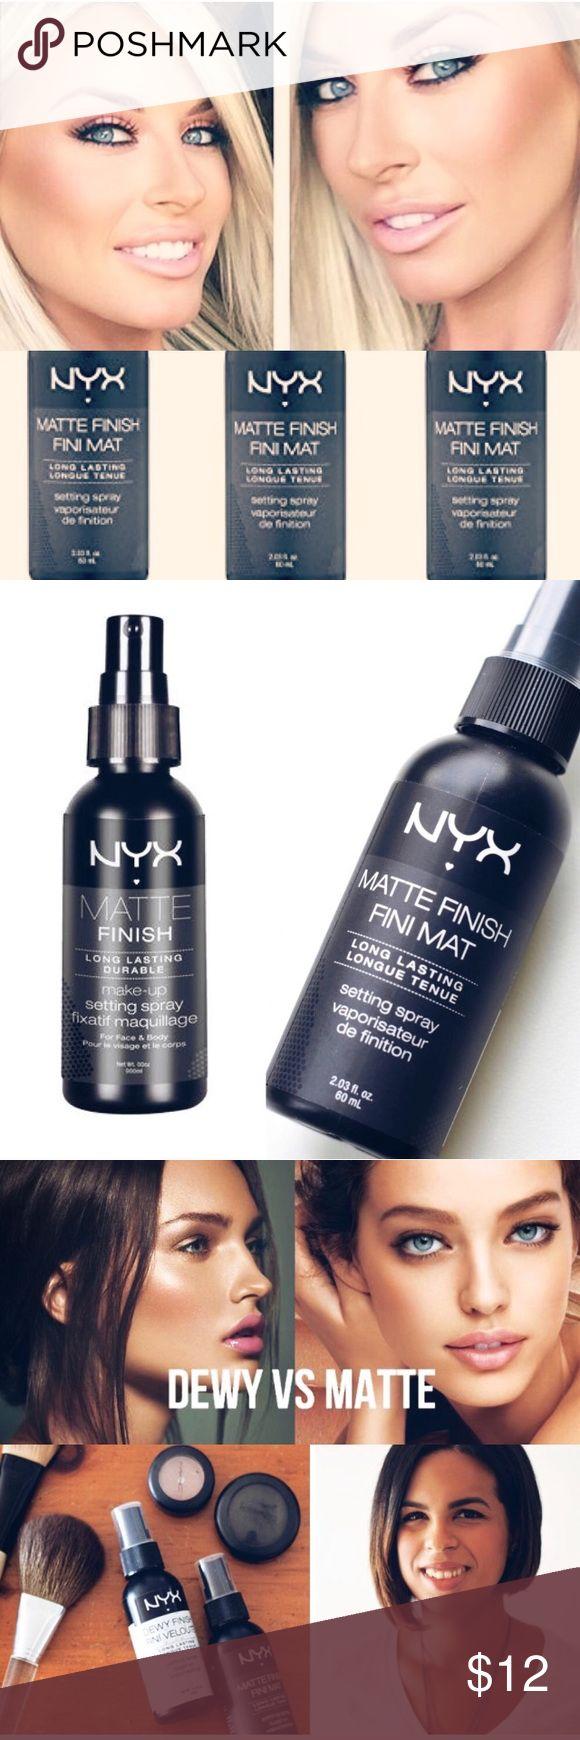 🔅NEW NYX *MATTE* Finishing Spray🔅W/GIFTS!🎁😍 🔅BRAND NEW & UNOPENED🔅NYX BEAUTY SUPPLIES & COSMETICS🔅*NEW* MATTE FINISHING SPRAY🔅SOLD OUT ONLINE & IN MOST STORES🔅Demand perfection! For that fresh make up look that LASTS! The NEW NYX setting spray is a gorgeous shine free matte finish thats BOTH lightweight AND comfortable while working hard to make sure ur make up stays put!!🔅INCLUDES SUPER CUTE FREE GIFTS🔅EXPEDITED SHIPPING🔅BUNDLE UR FAV 3 ITEMS FOR AN *ADDITIONAL* 15% OFF OR AN…